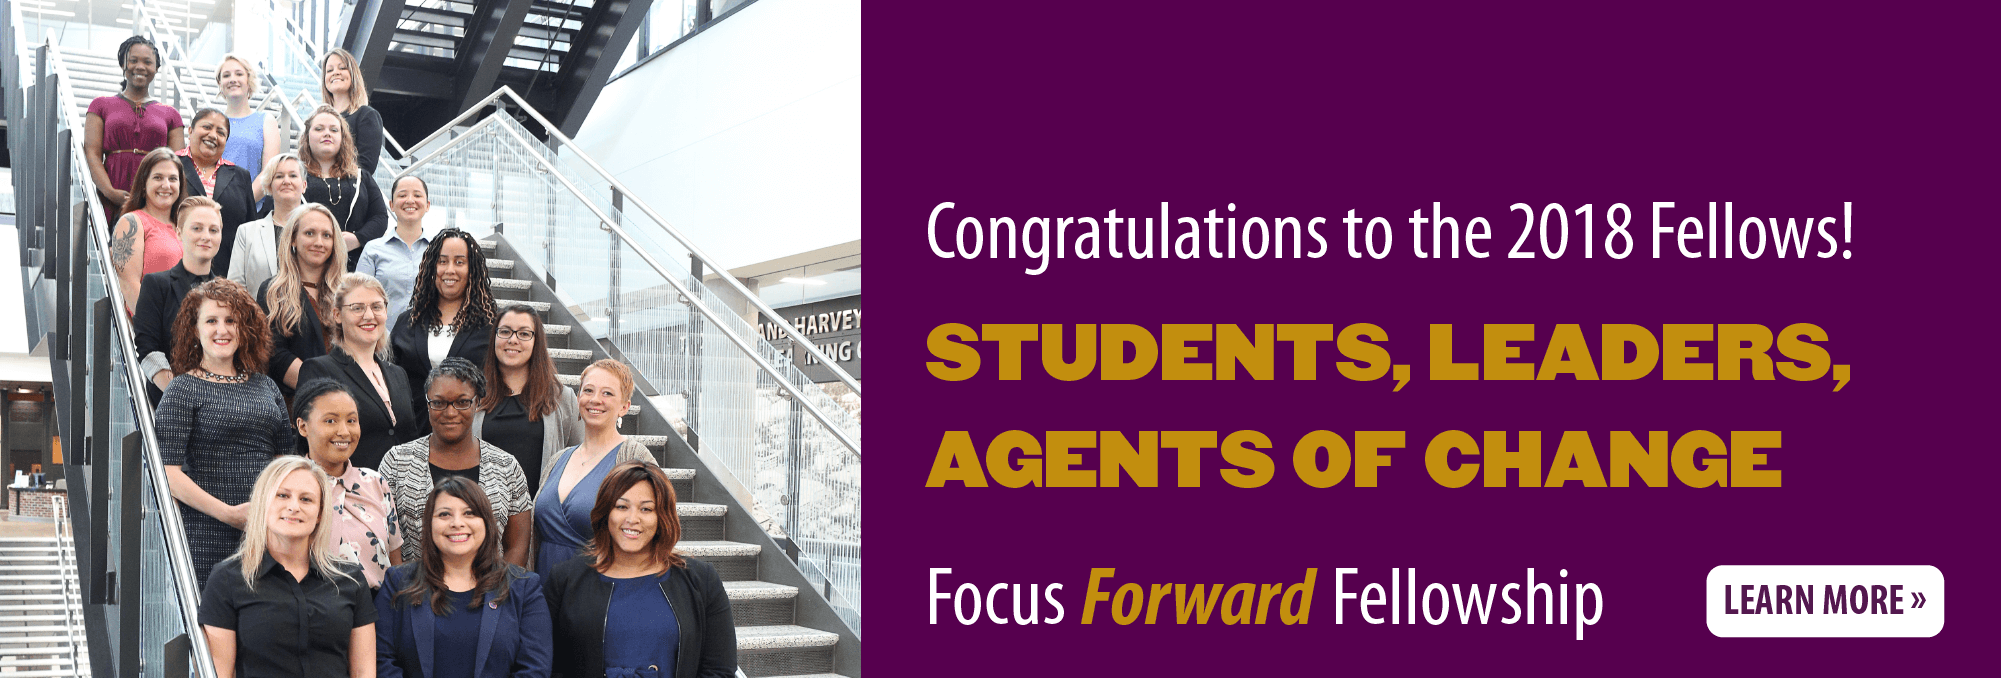 Congratulations to the 2018 Fellows! Students, Leaders, Agents of Change Focus Forward Fellowship Learn more